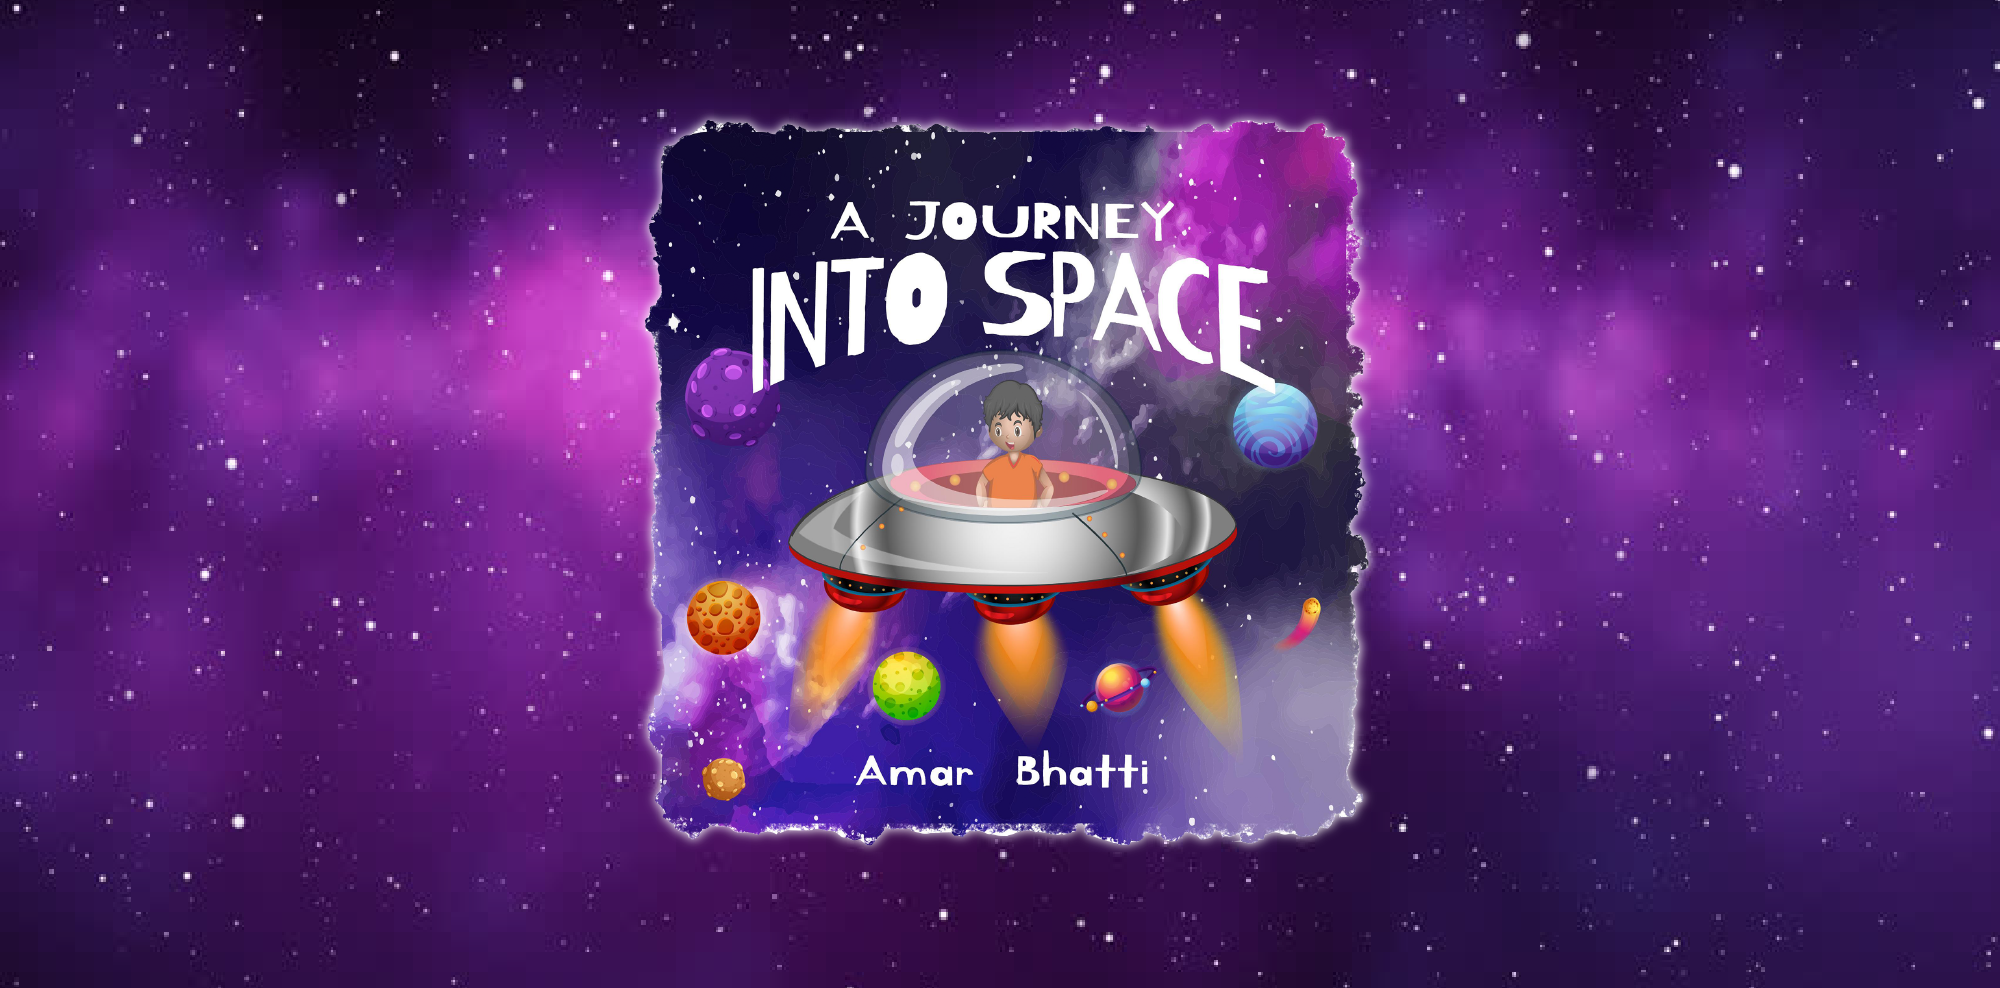 A Journey in to space